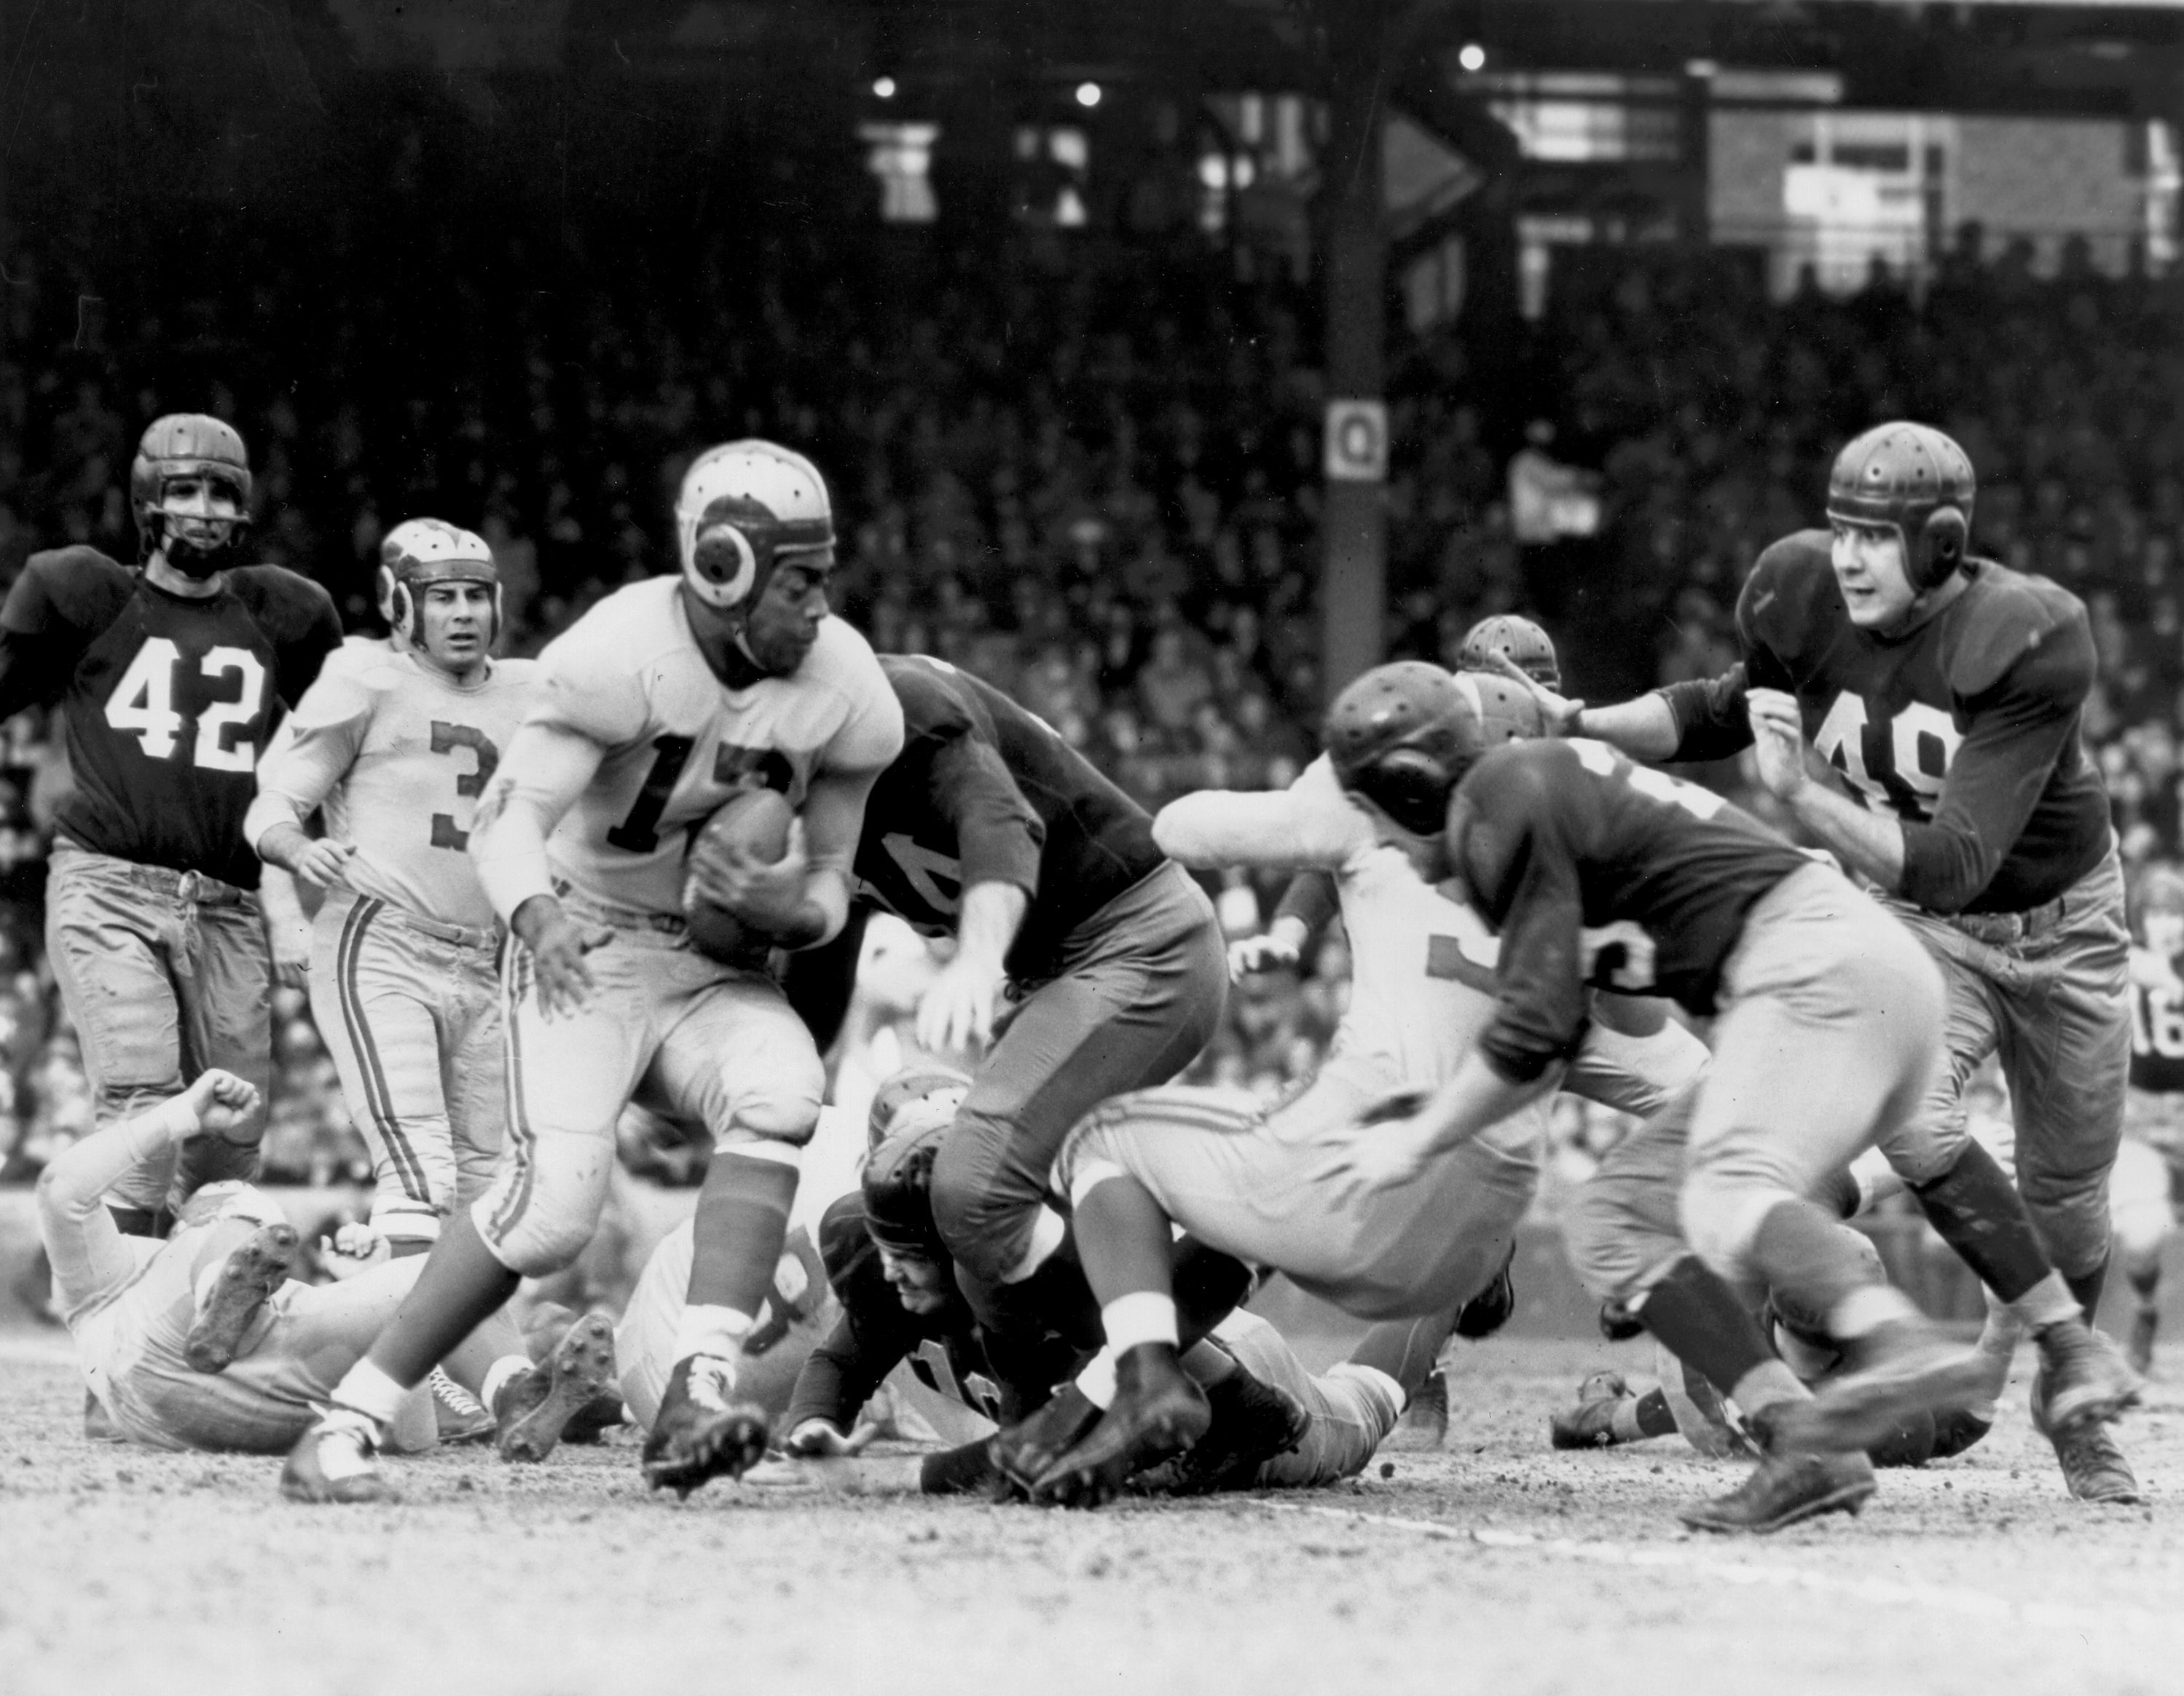 Les Horvath Is Still the Only NFL Player and Licensed Physician to Win the Heisman Trophy